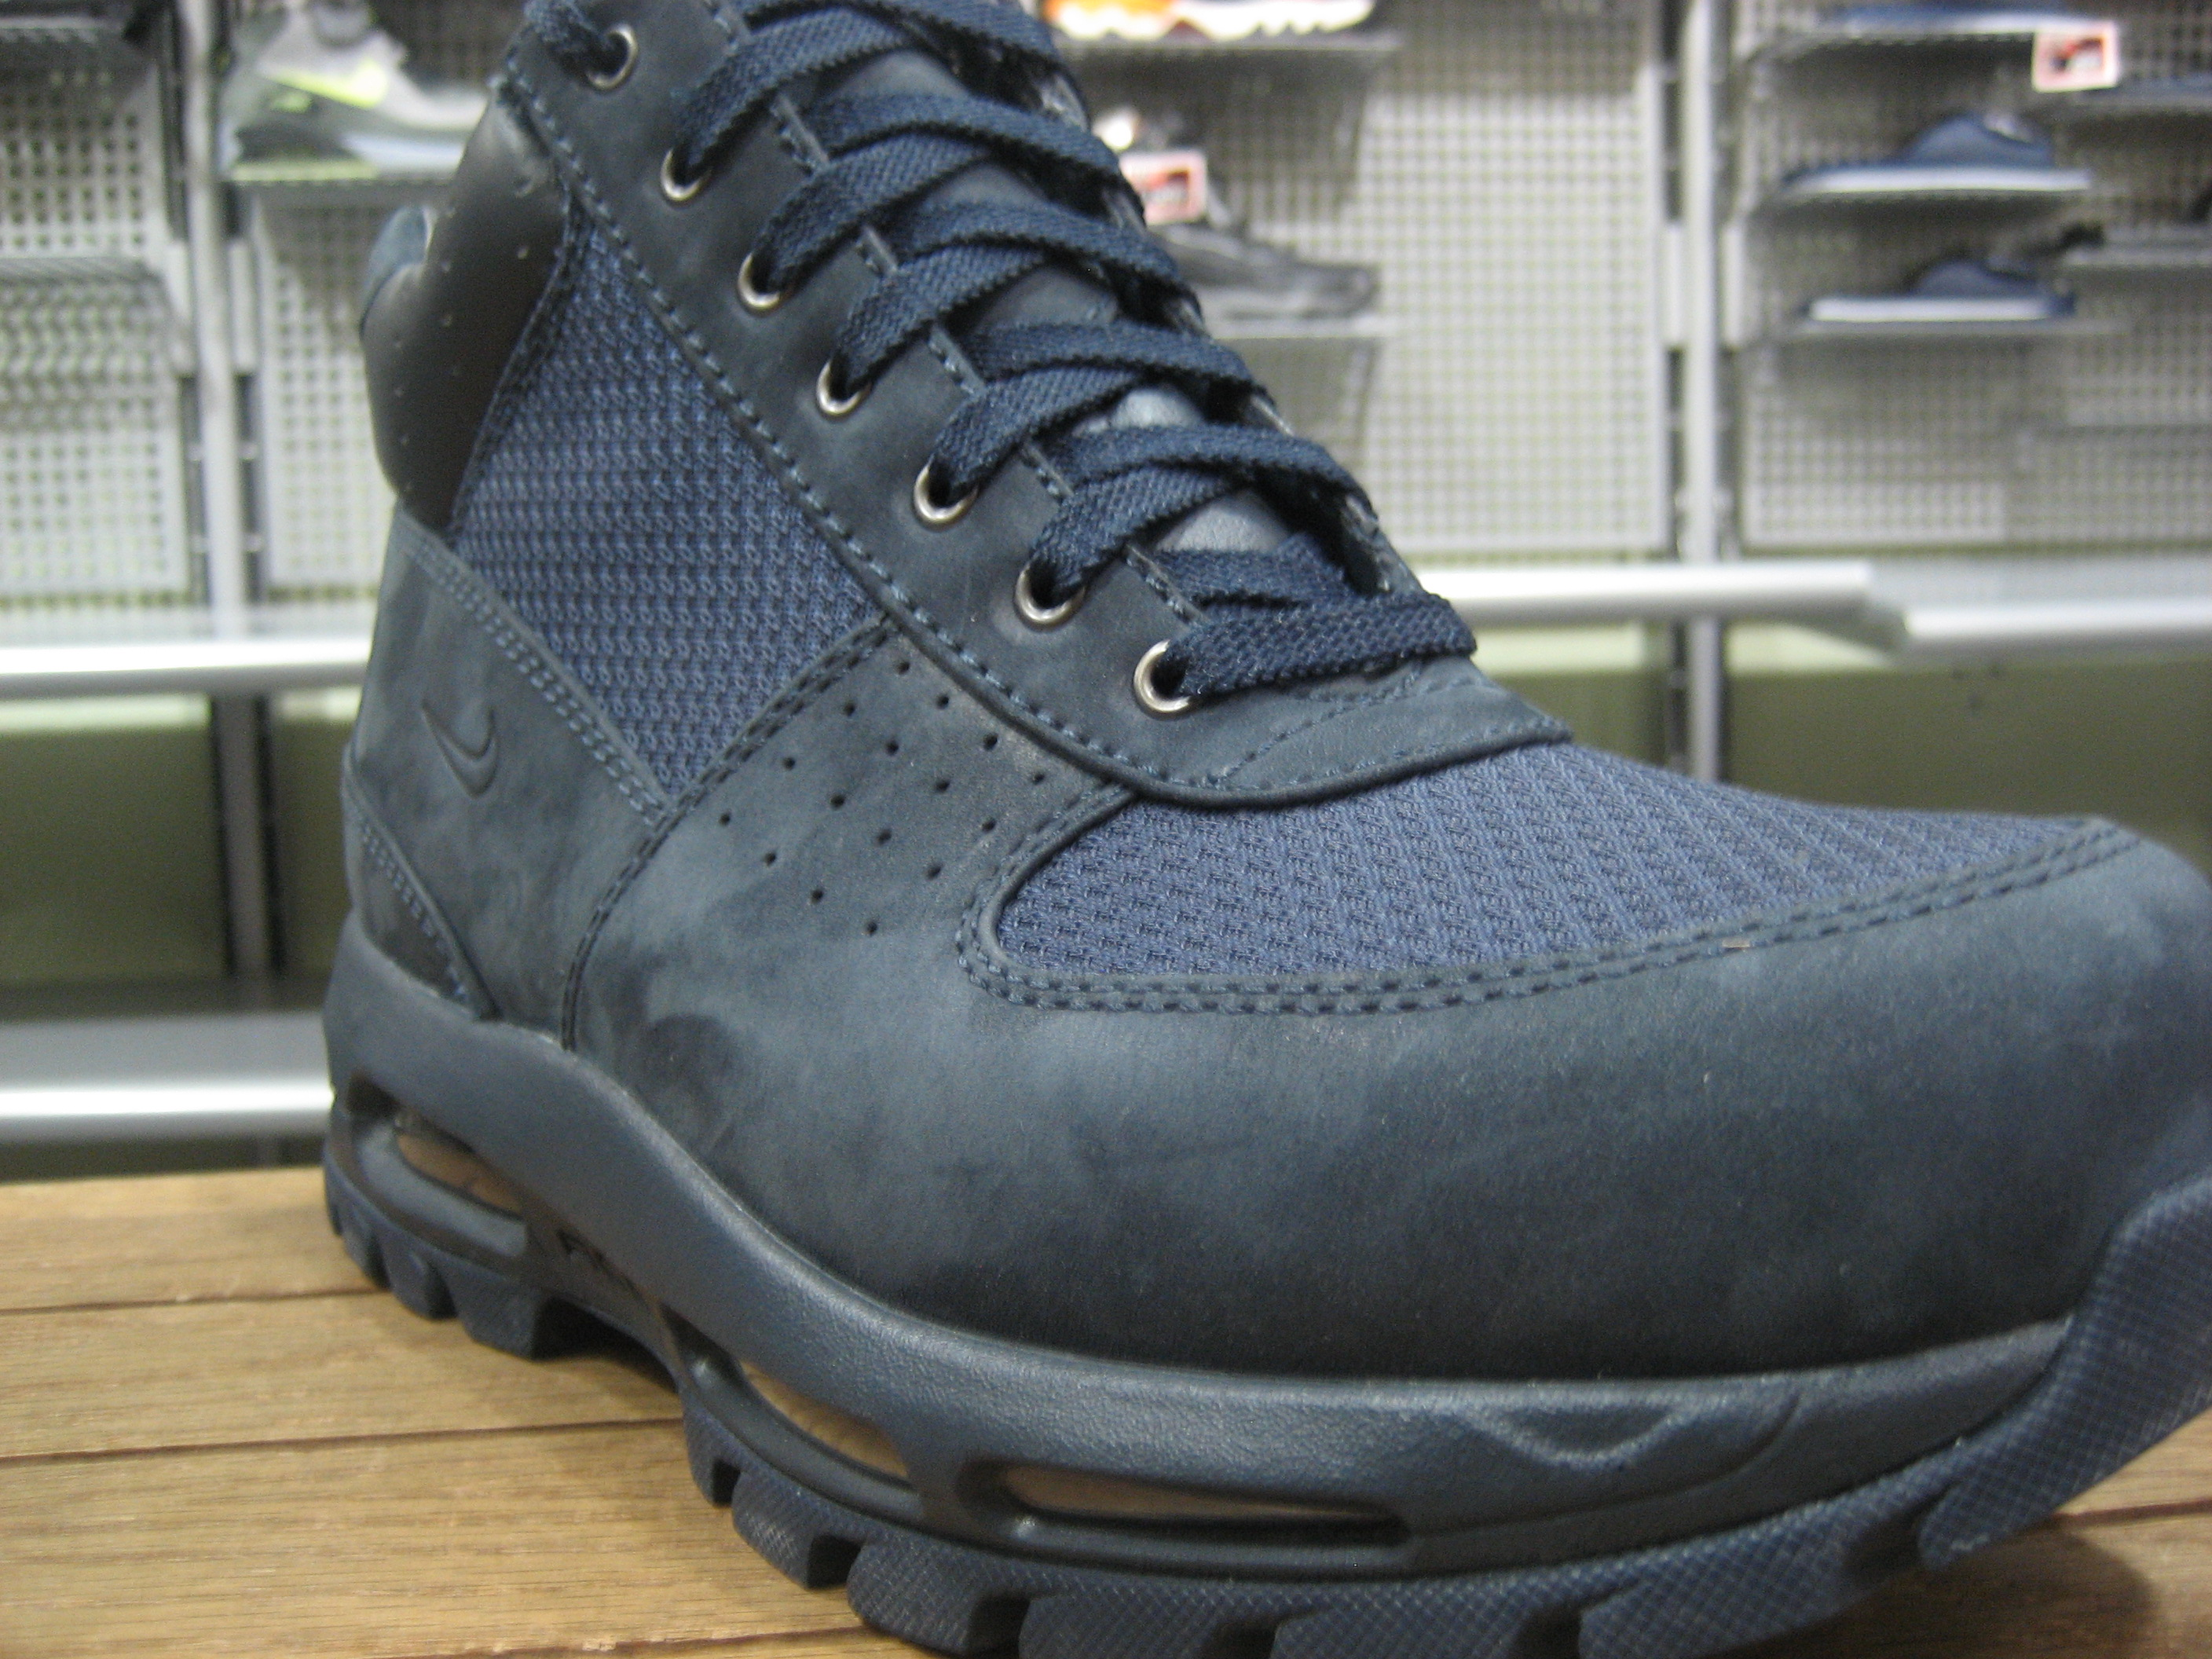 cheap acg boots